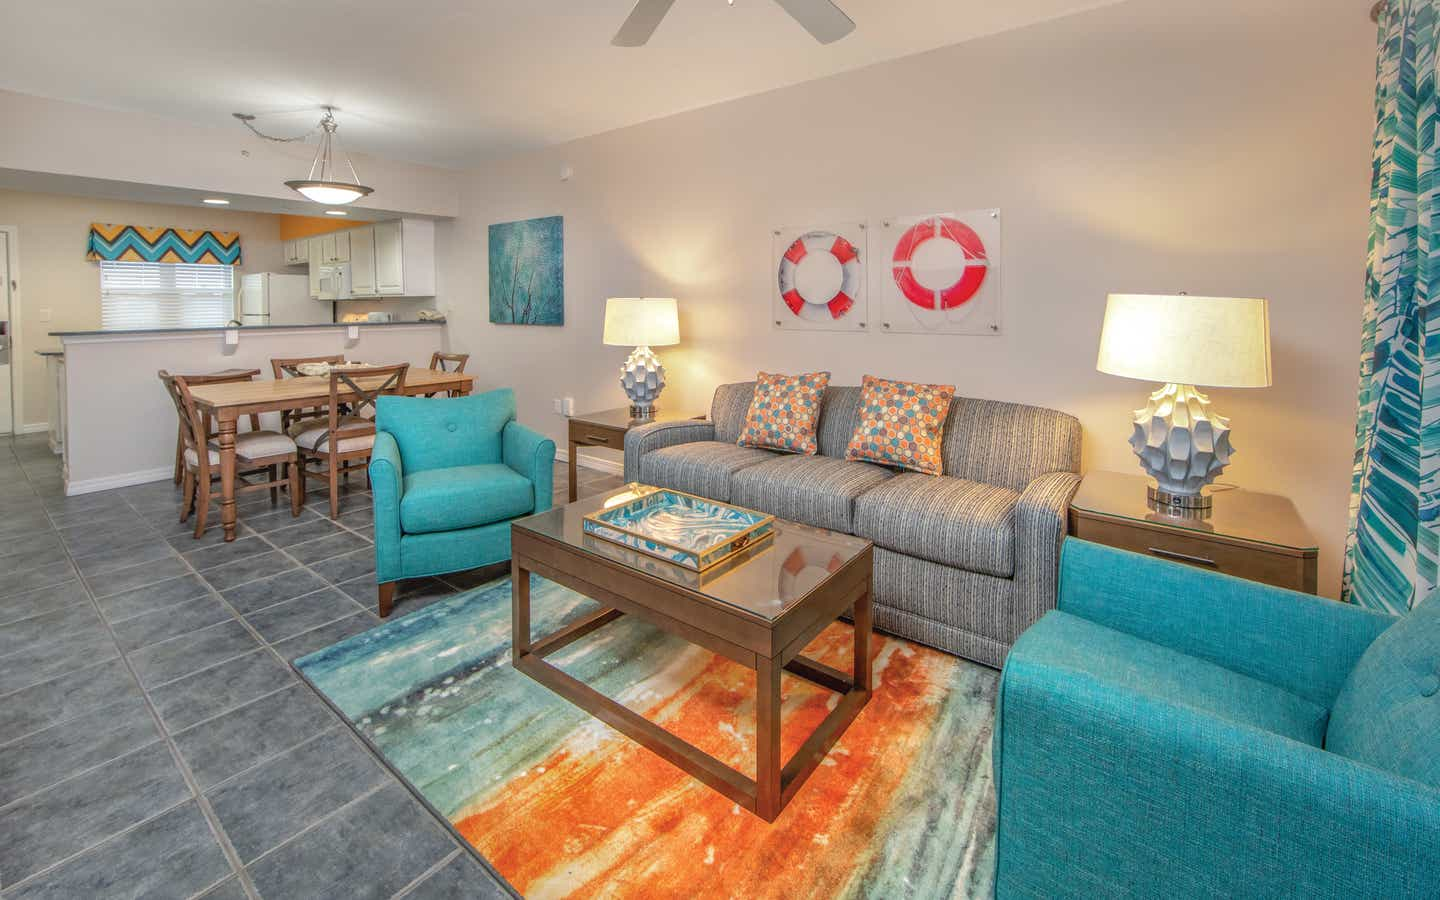 Living room with couch, two accent chairs, and coastal decor in a one-bedroom villa at Panama City Beach Resort